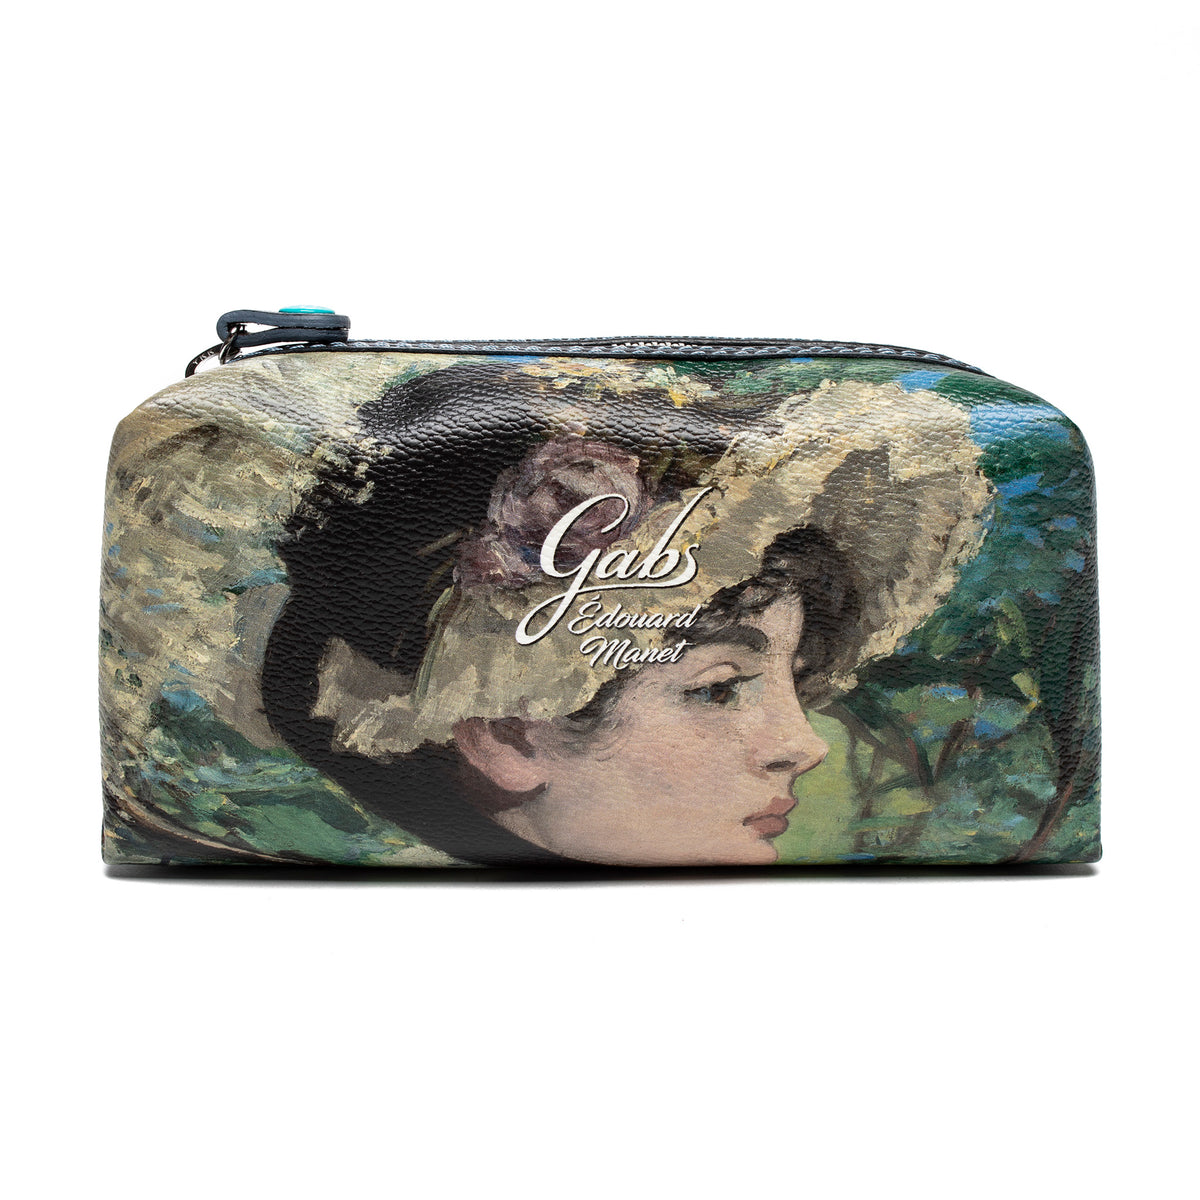 Cosmetics Bag featuring Manet's Jeanne Spring by Gabs, Italy